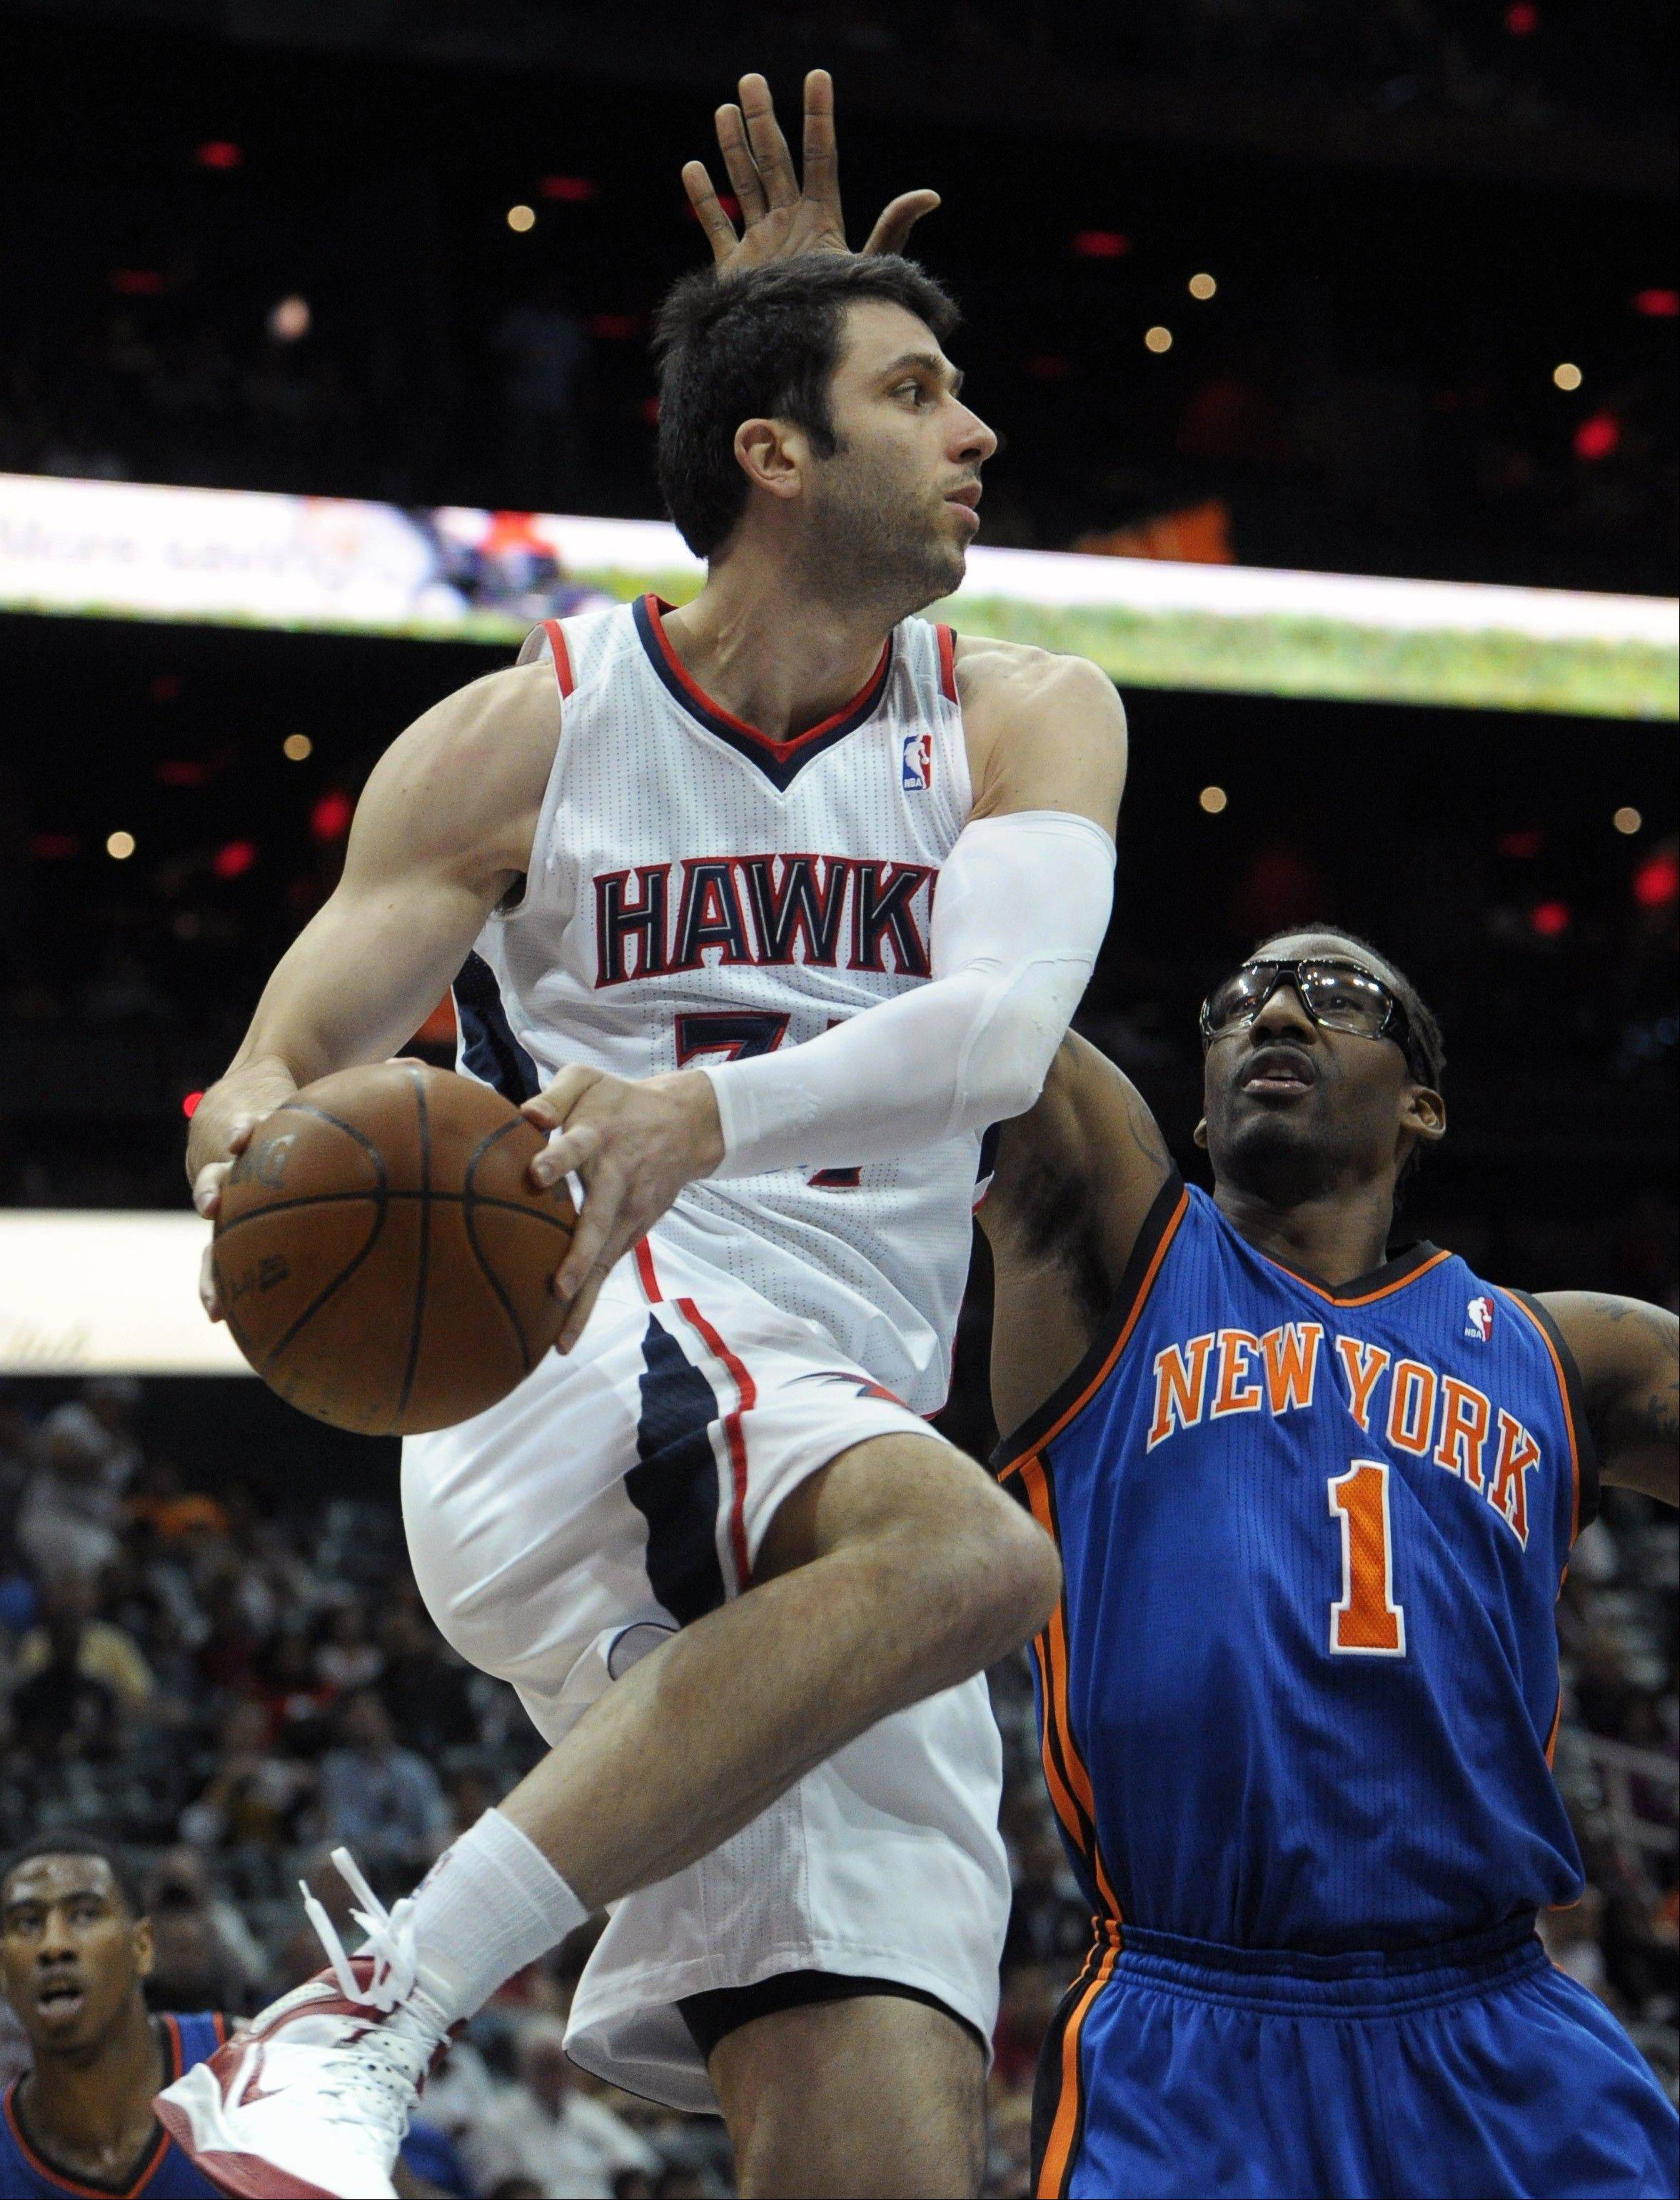 Former Atlanta Hawks forward Vladimir Radmanovic, a 6-foot-10 NBA veteran with a strong outside shot, has signed a one-year deal with the Chicago Bulls.